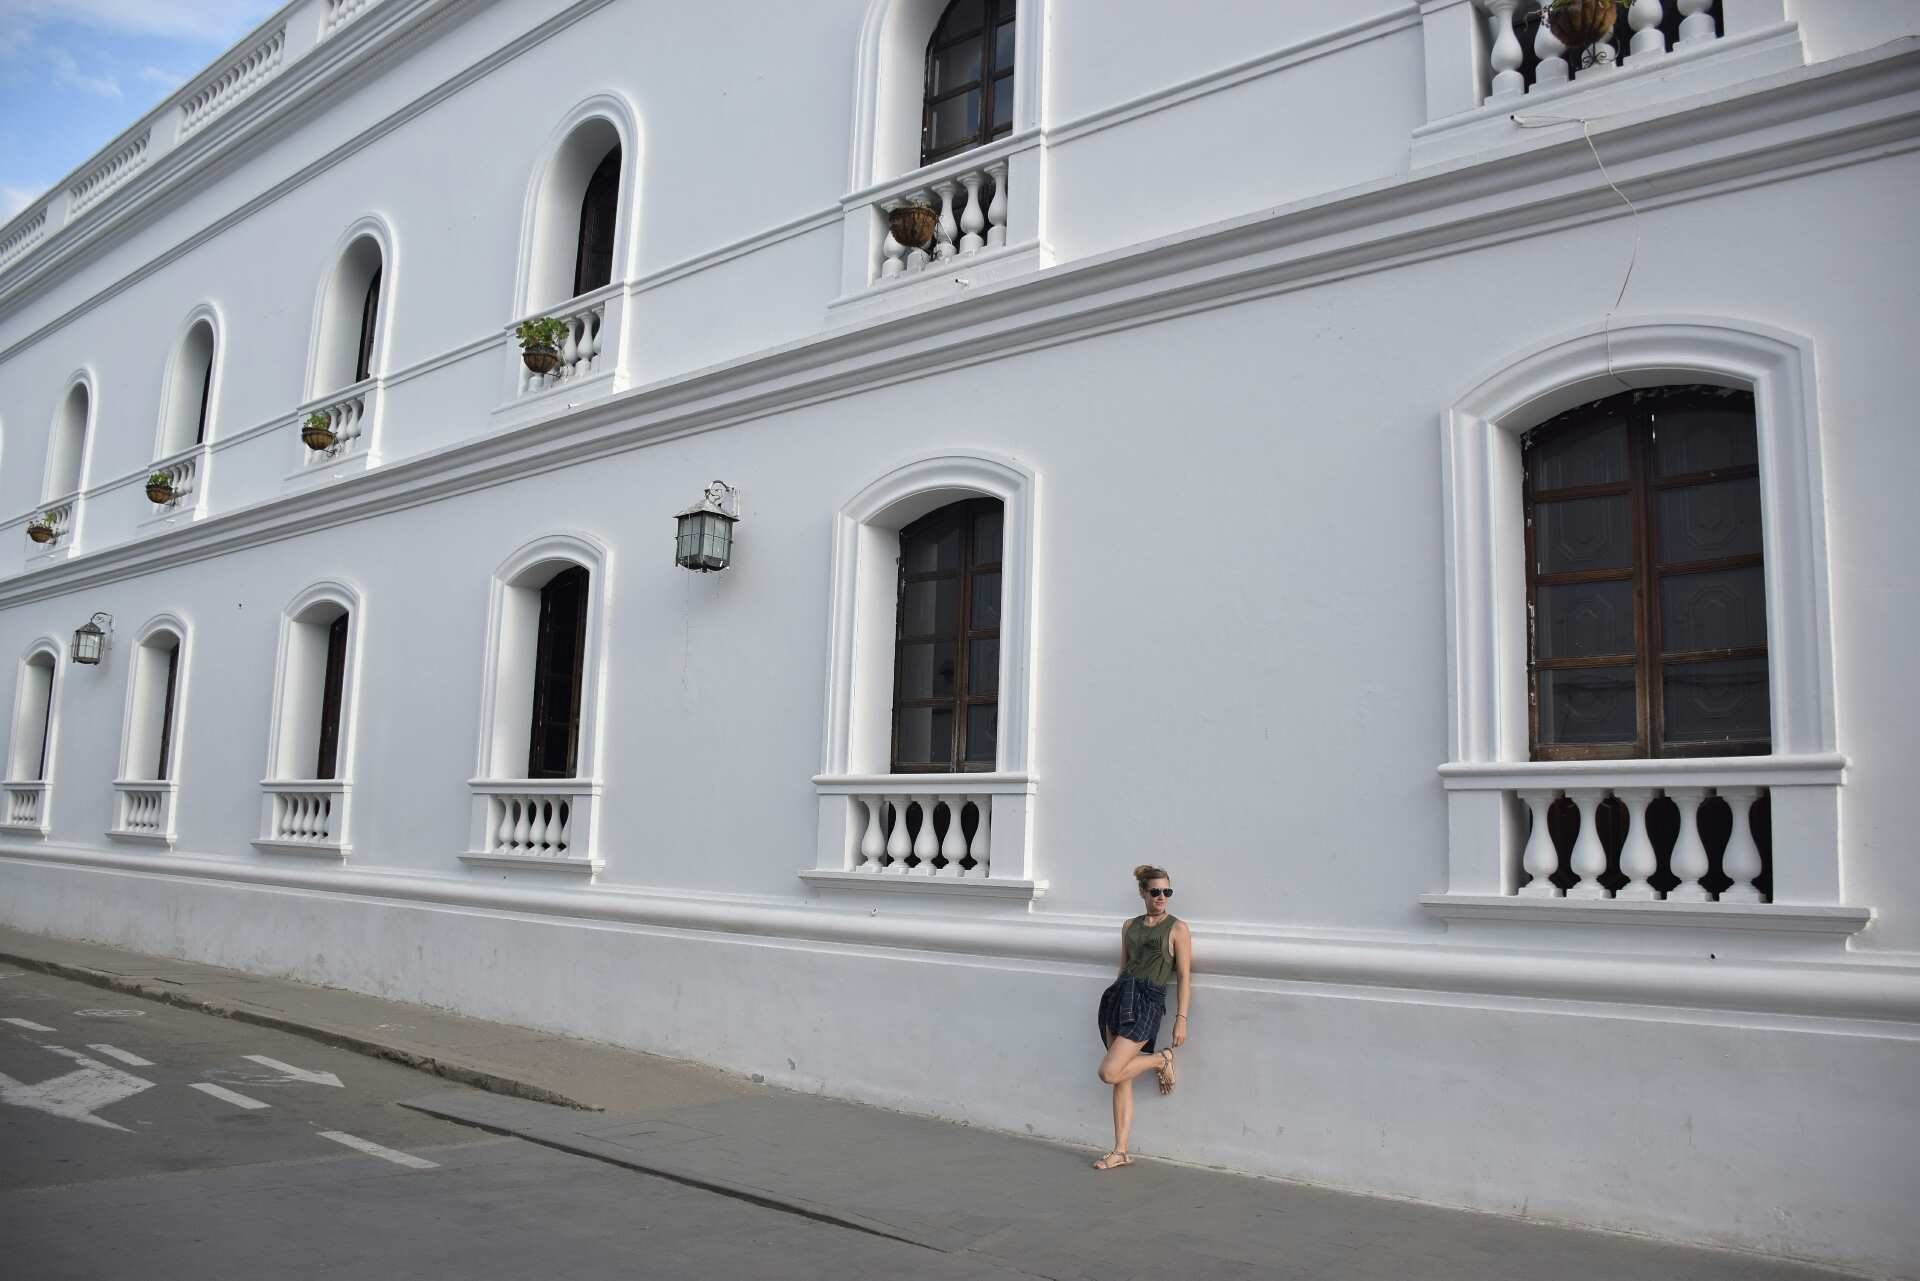 Popayan in Southern Colombia, amazing colonial buildings